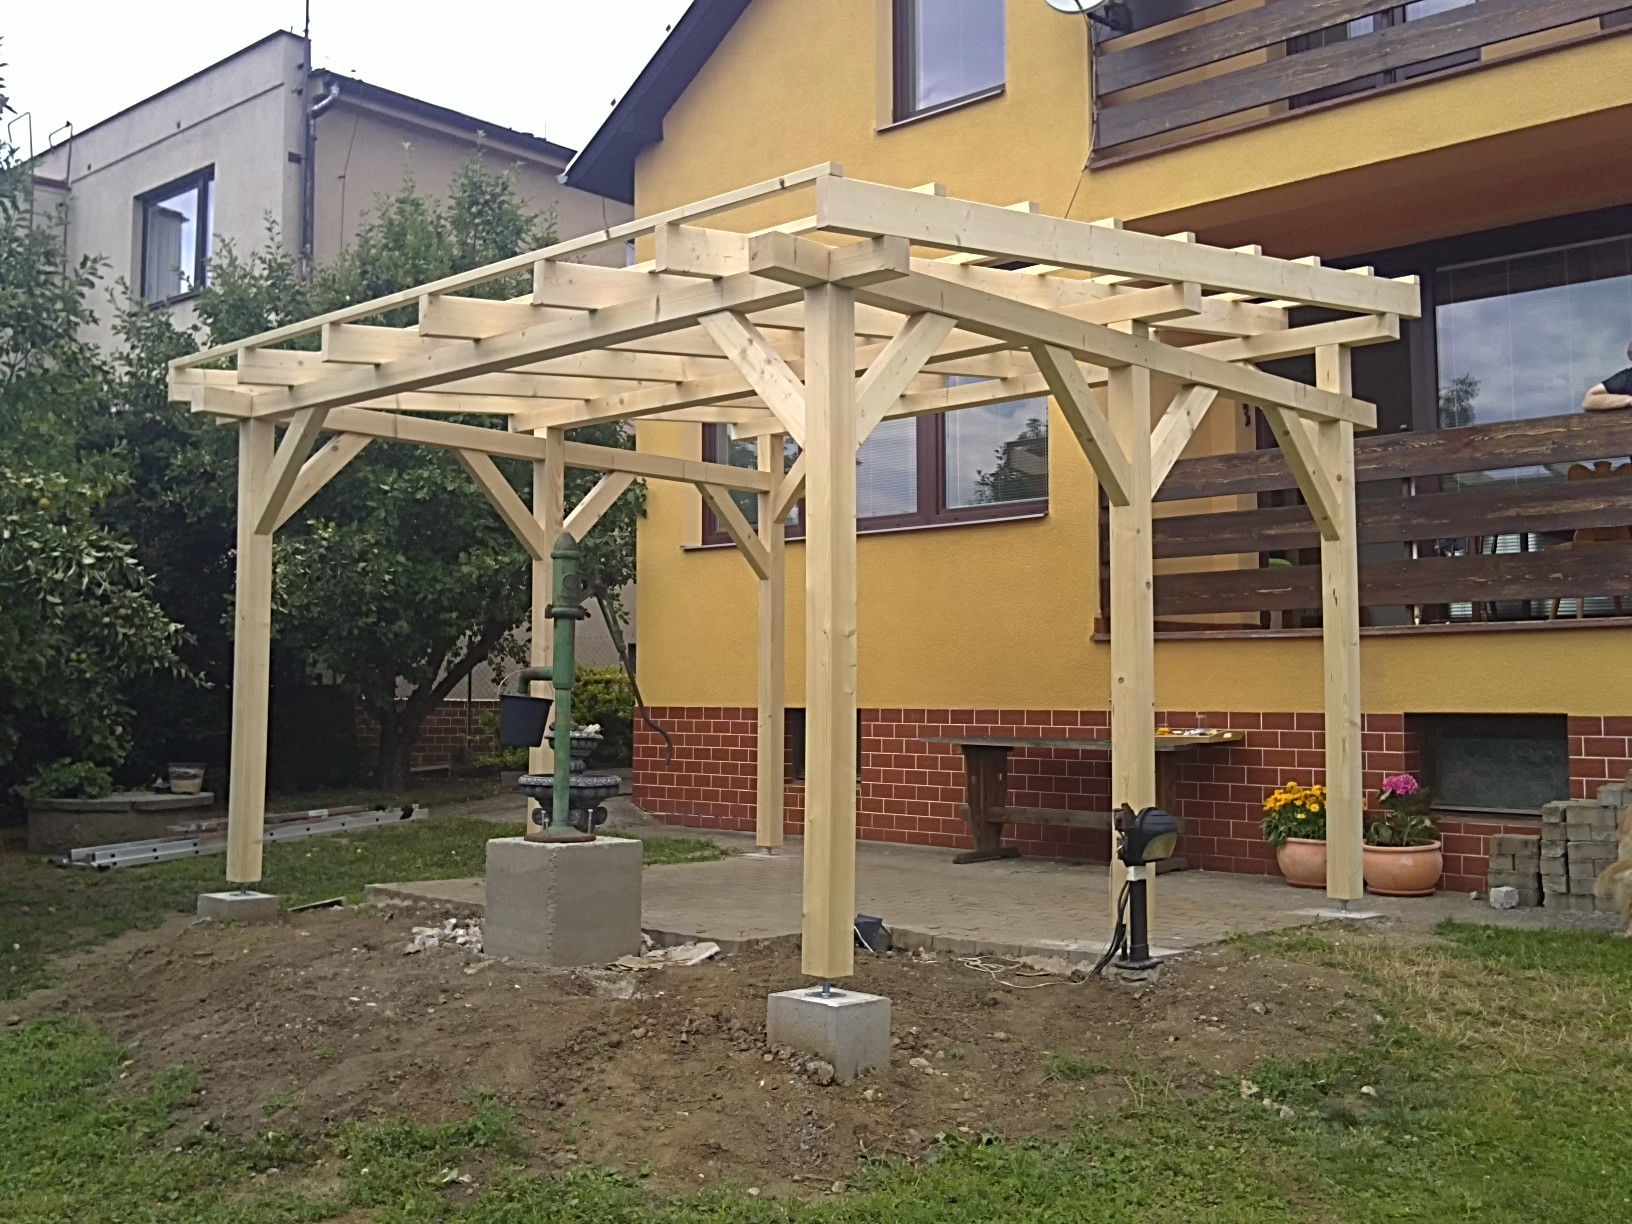 pergola 5 x 5 m sklon 6 zahradn domky bel an. Black Bedroom Furniture Sets. Home Design Ideas